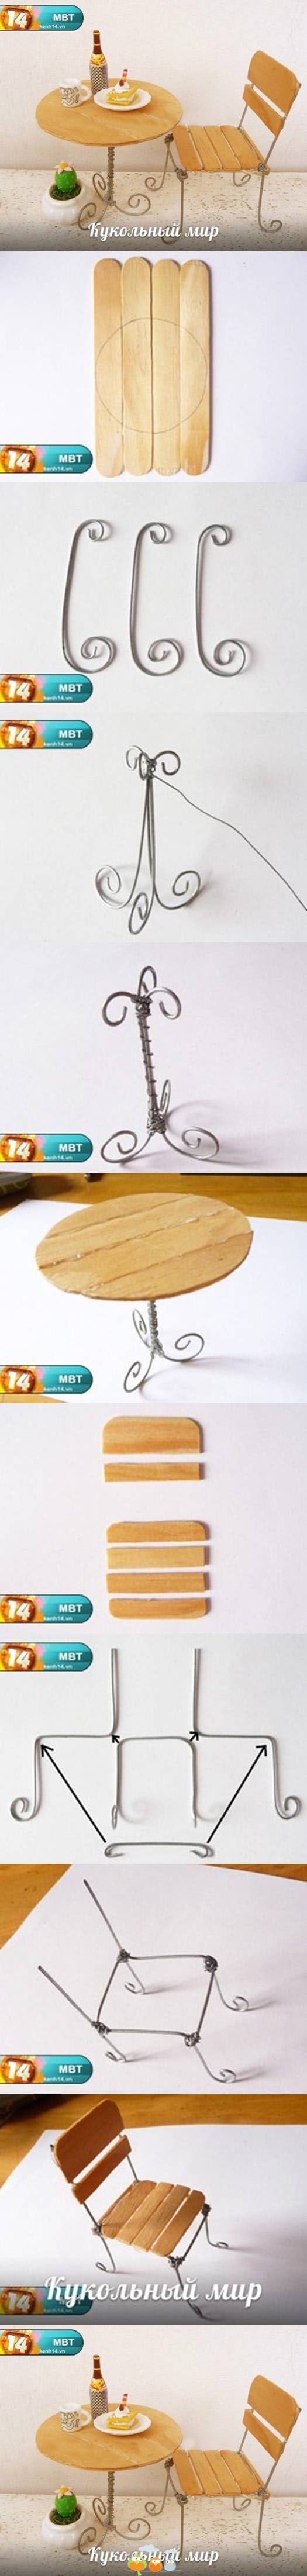 Table and chair-popsicle sticks and wire